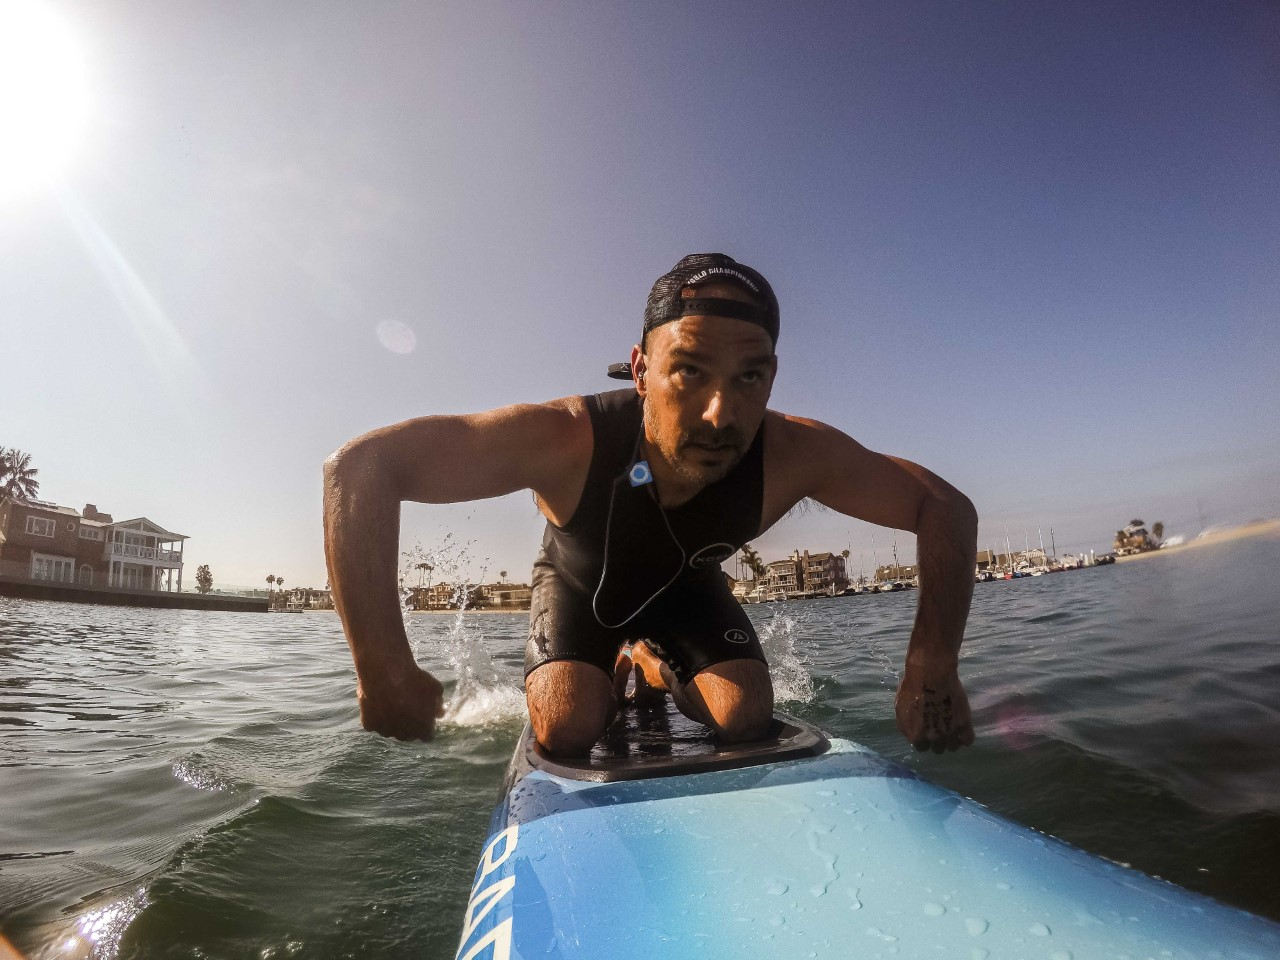 Chris Aguilar - endurance board paddling, ocean videos, helping others